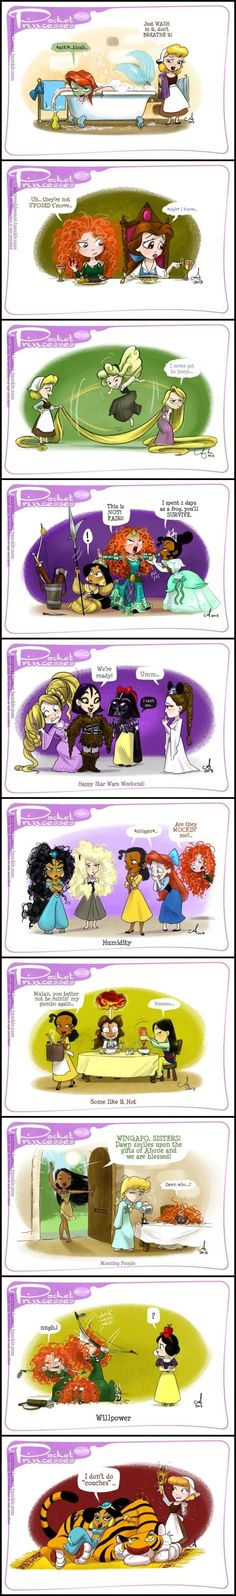 Pocket Princesses (Part 6) by Amy Mebberson - I am in love with the Pocket Princesses! I always laugh at their antics and would love to read more! by susangir